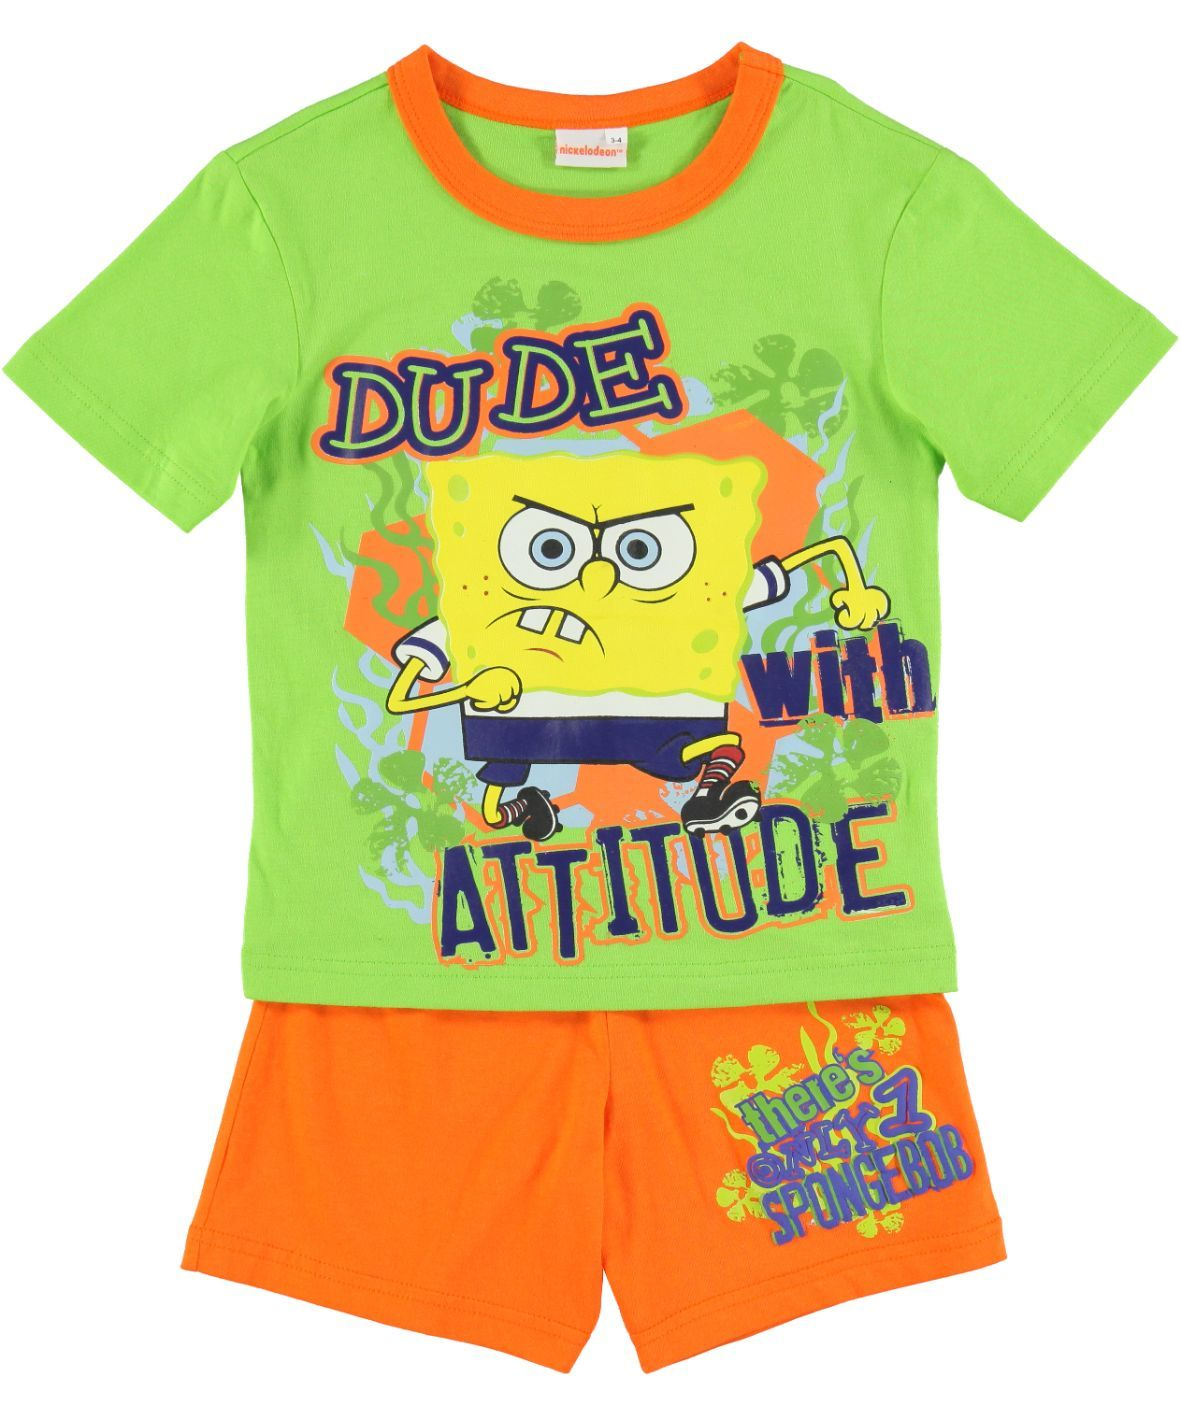 82962e540f30b SpongeBob is getting serious and your little guy can too in this SpongeBob  tee and shorts set. Available at selected Ackermans stores.